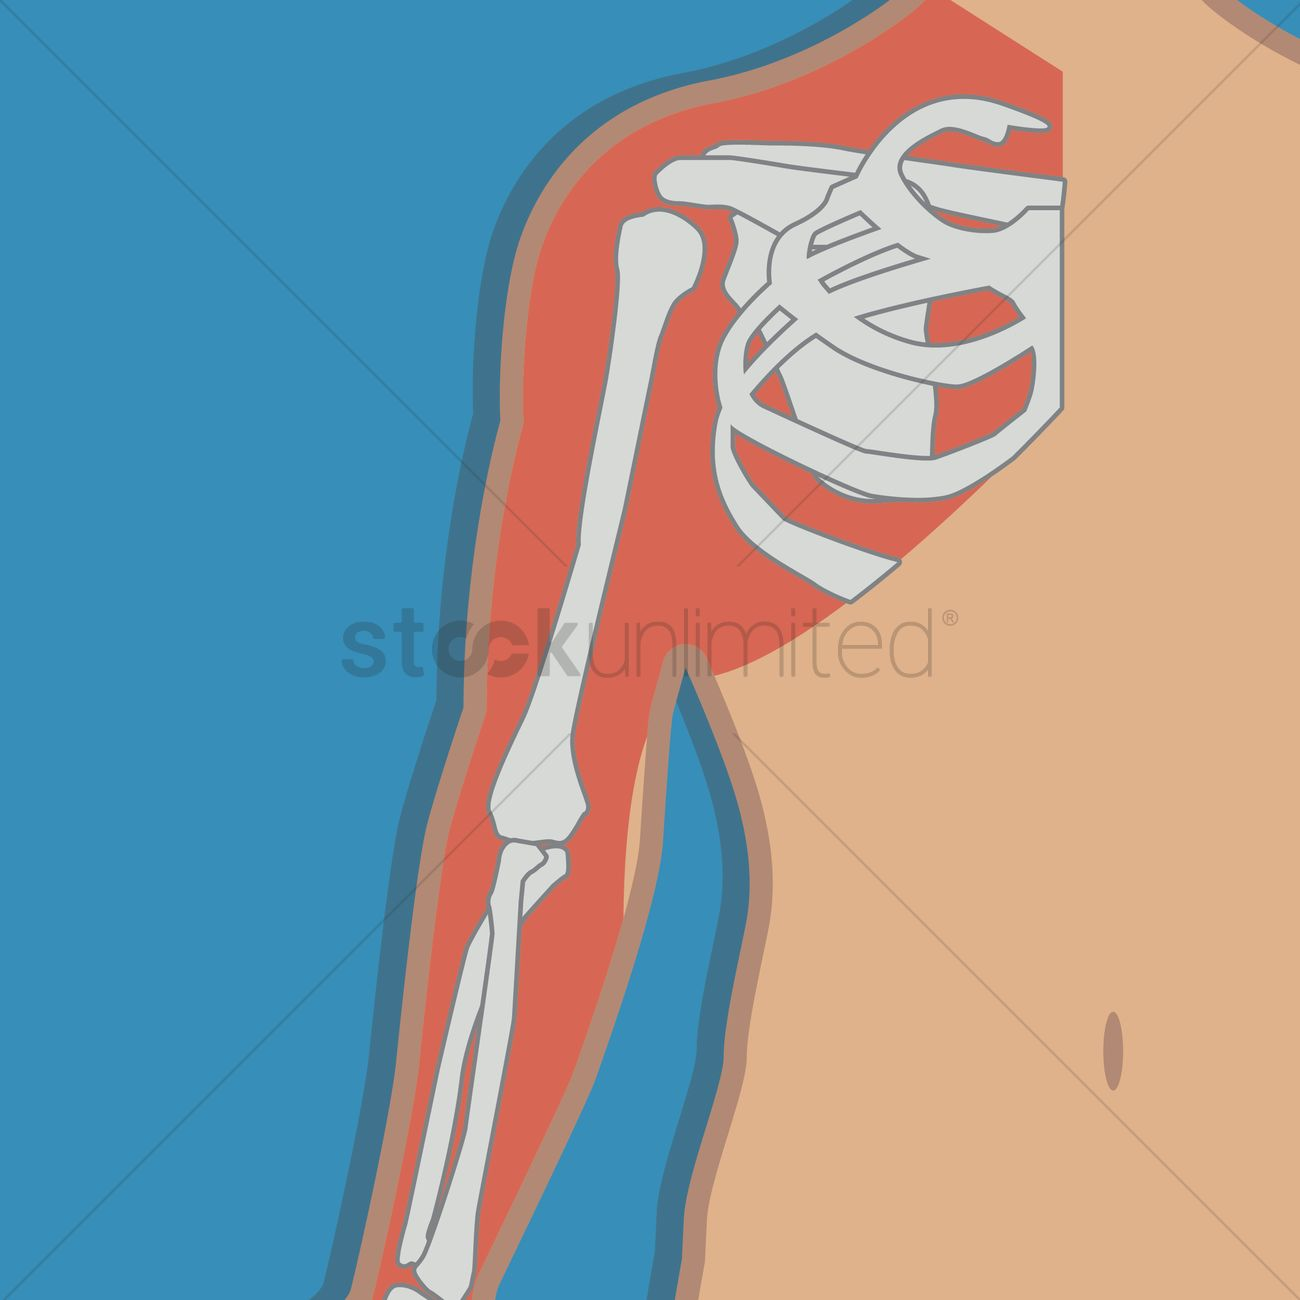 Free Shoulder Joint Anatomy Bones Vector Image 1277365